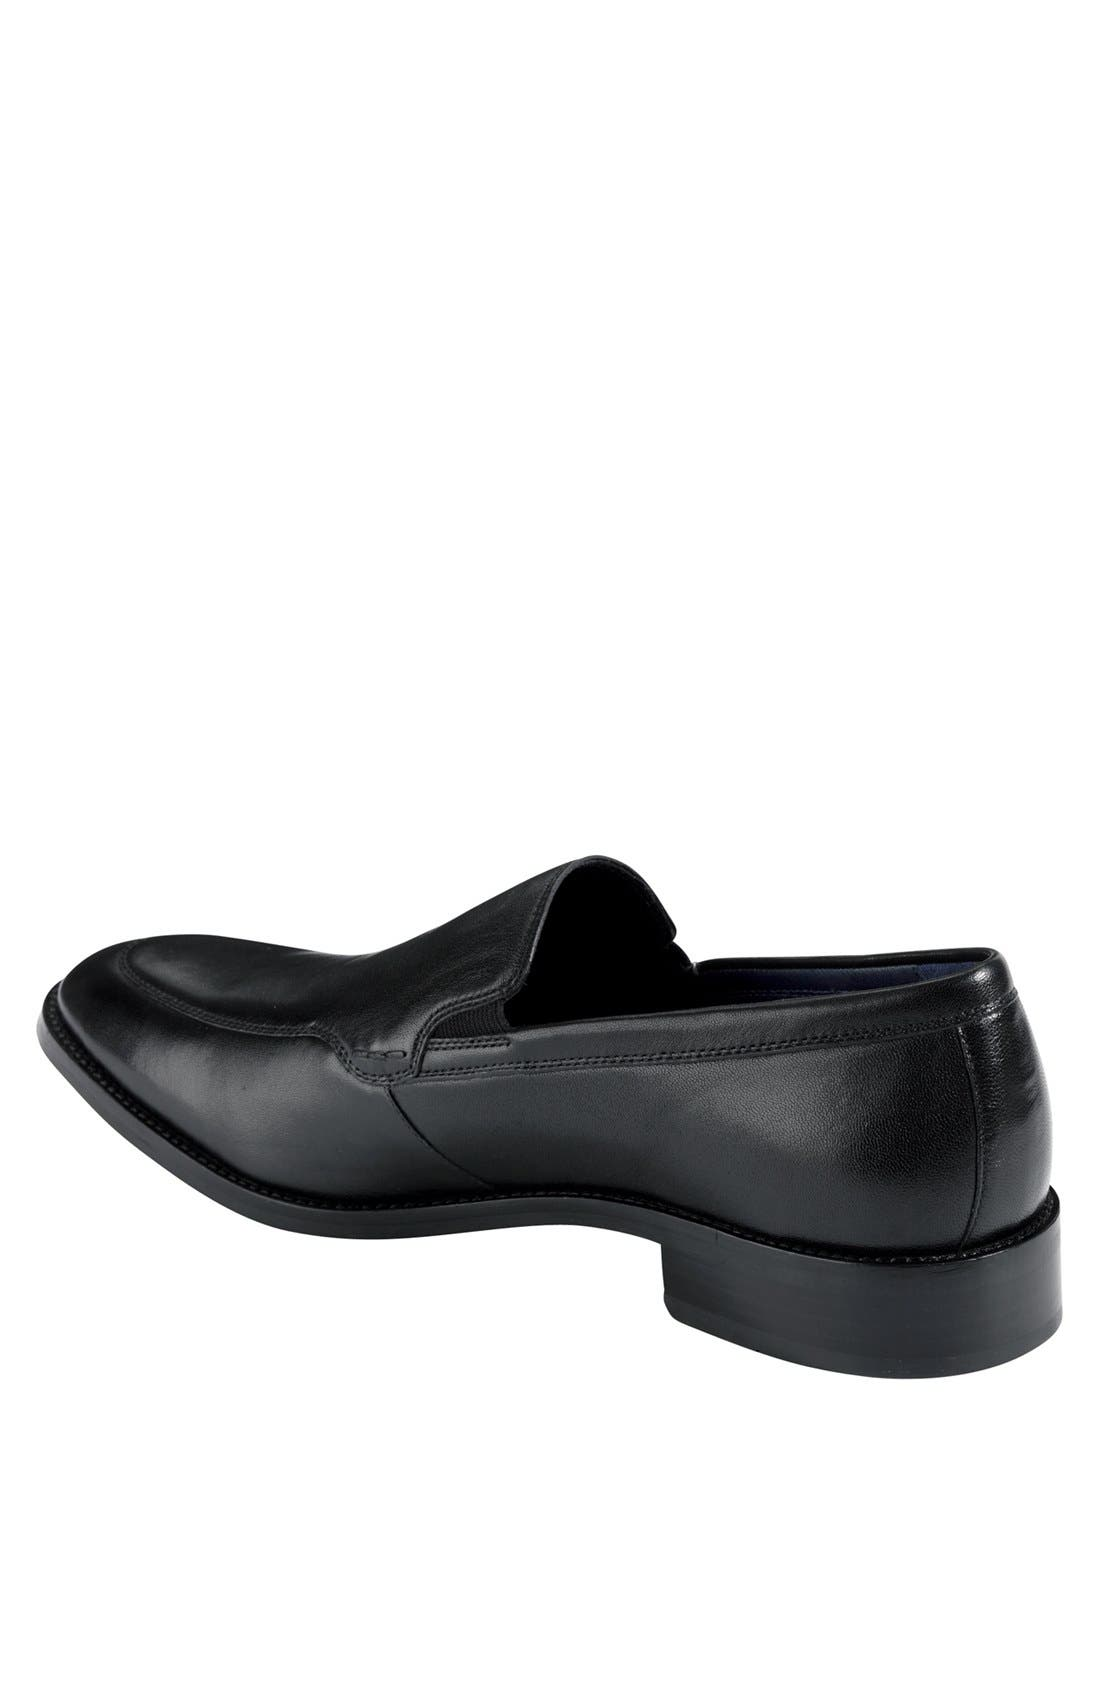 Alternate Image 2  - Cole Haan 'Lenox Hill' Venetian Loafer (Men)